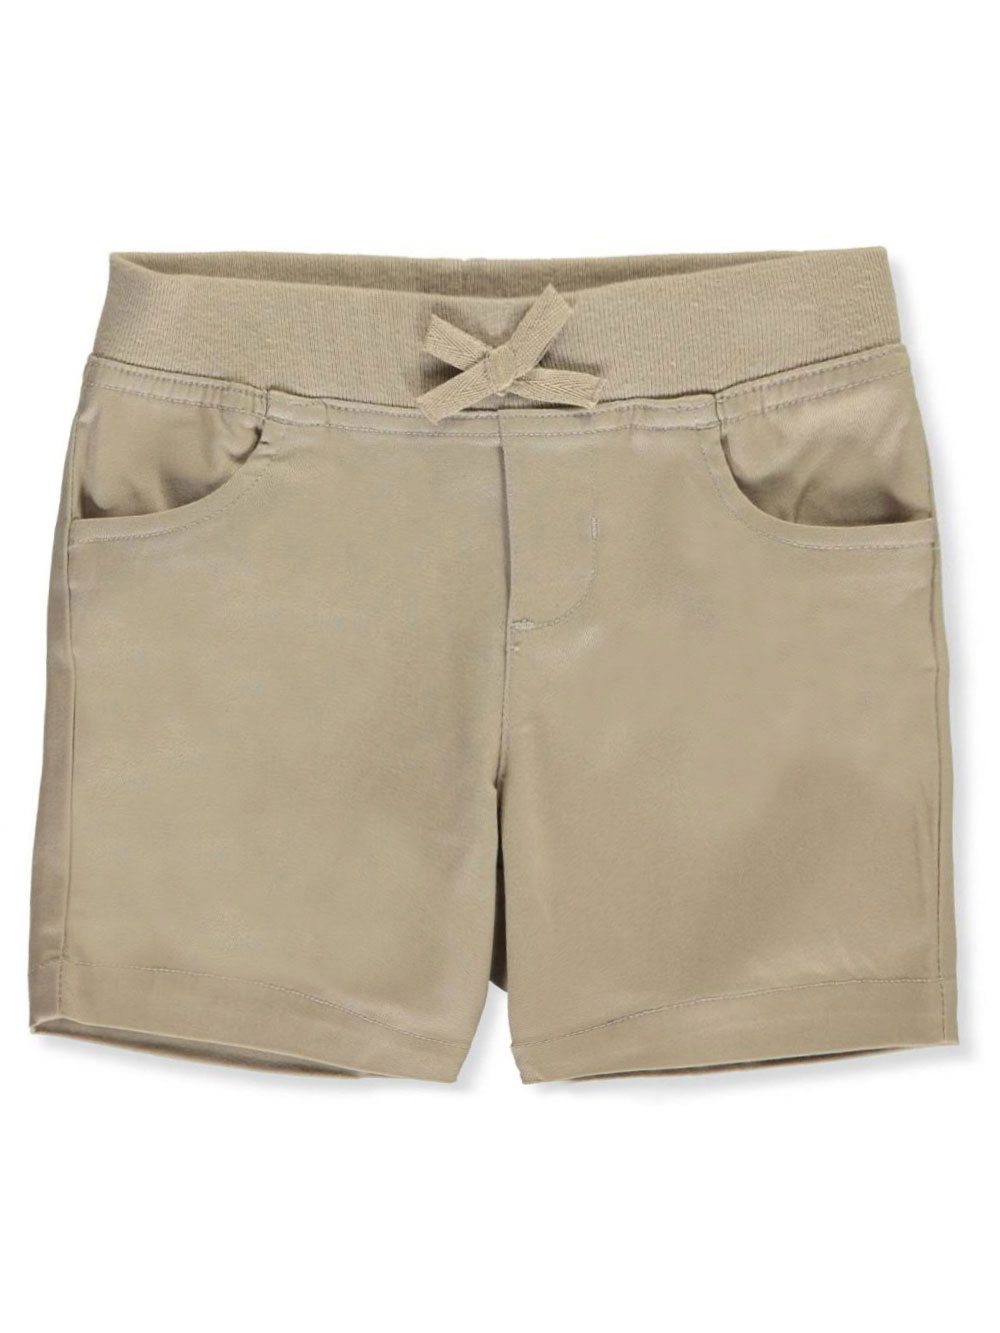 Toddler Khaki Pull On Pant Flat Front French Toast School Uniform Sizes 2T 4T